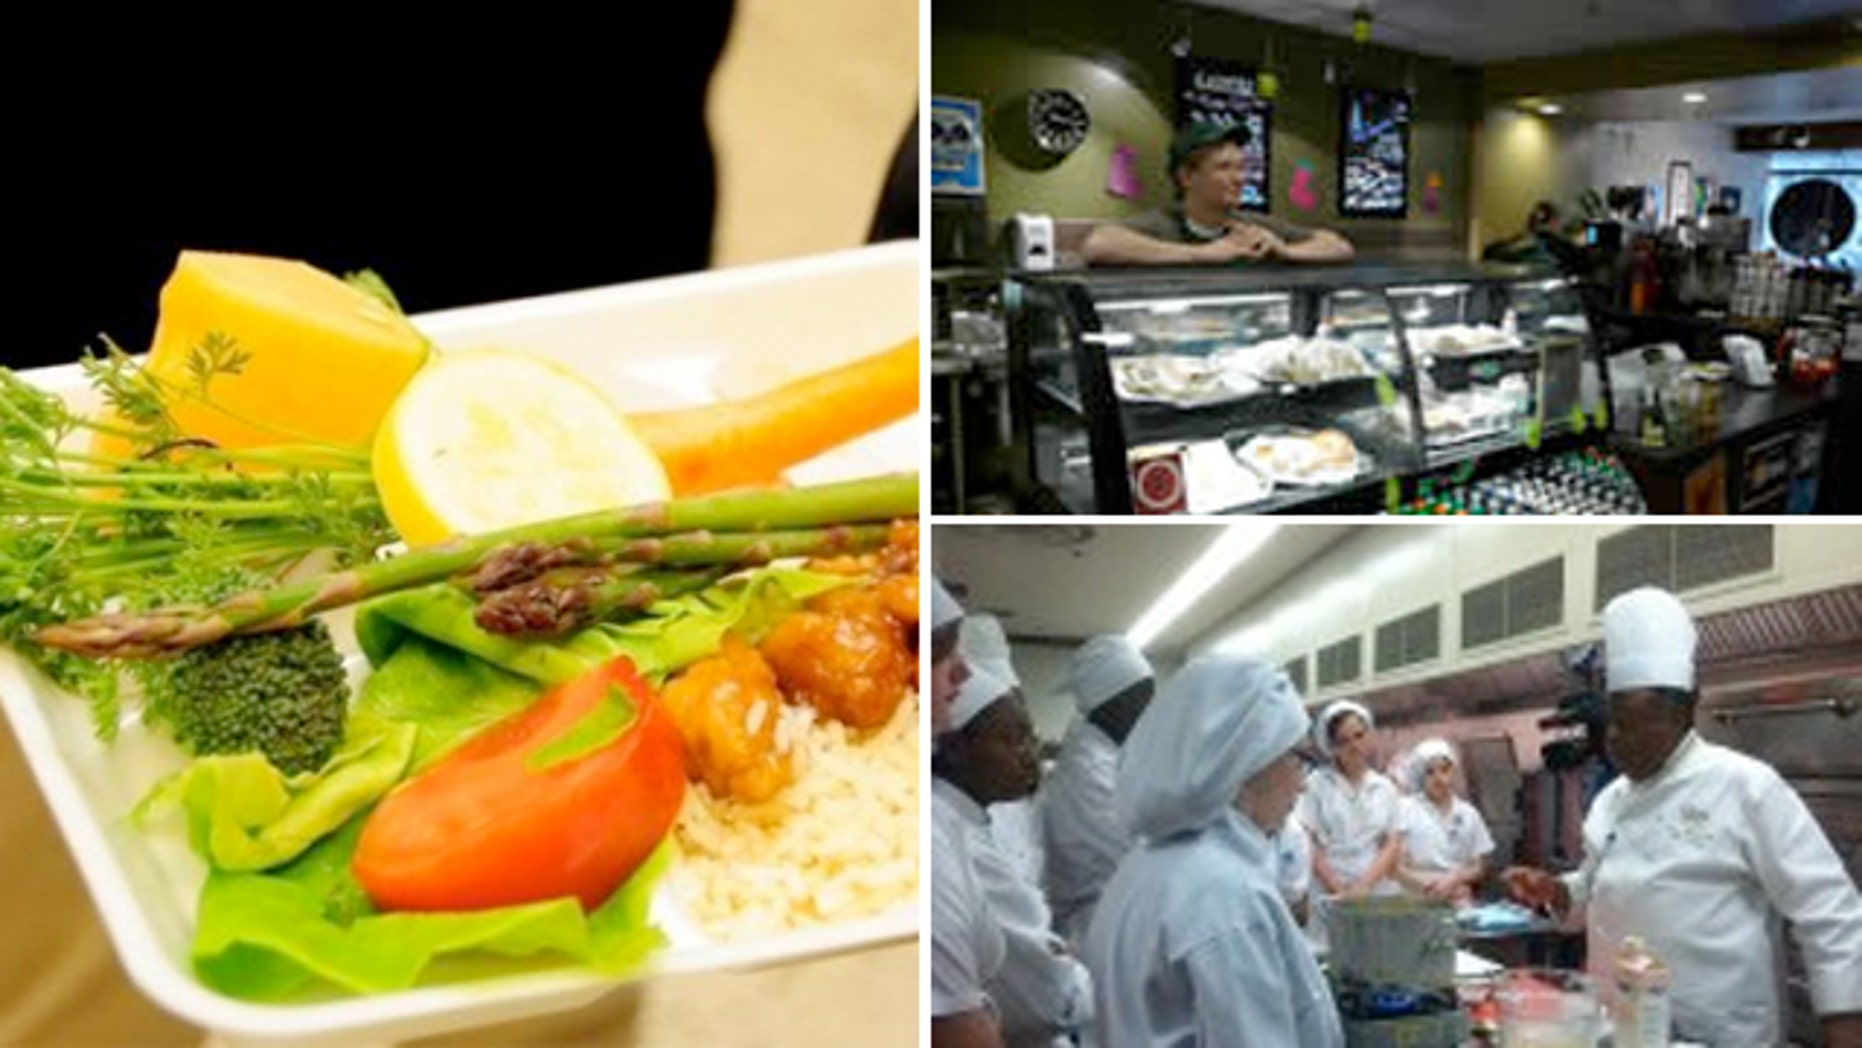 Now high school students run cafes and take courses from master chefs as school.